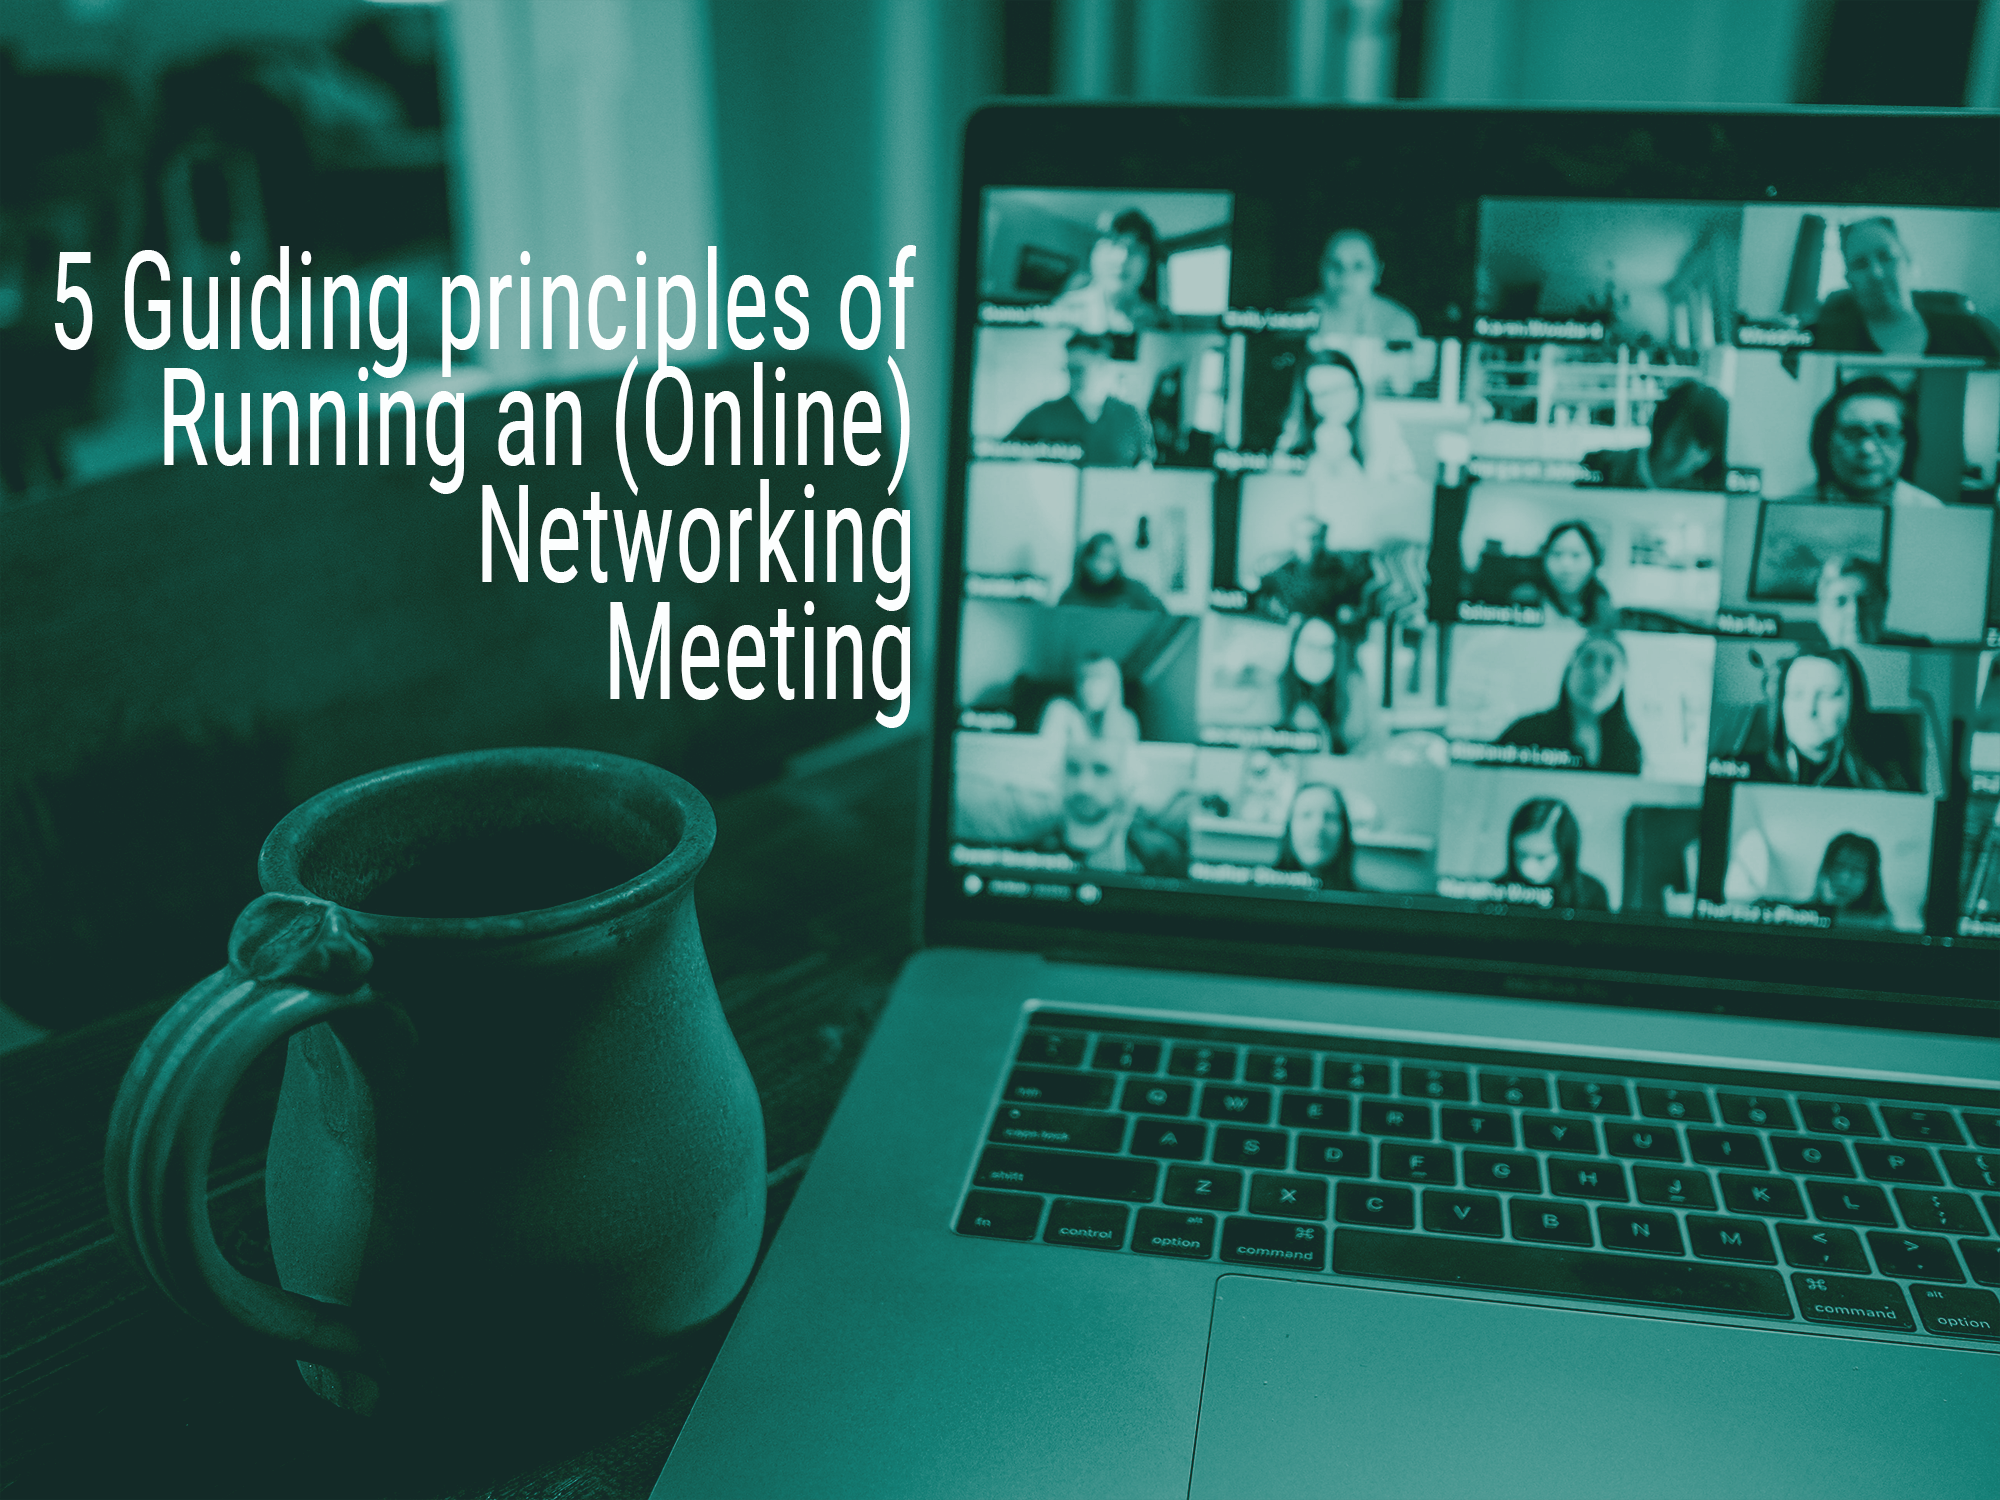 The Five Guiding Principles of Running an (Online) Networking Meeting